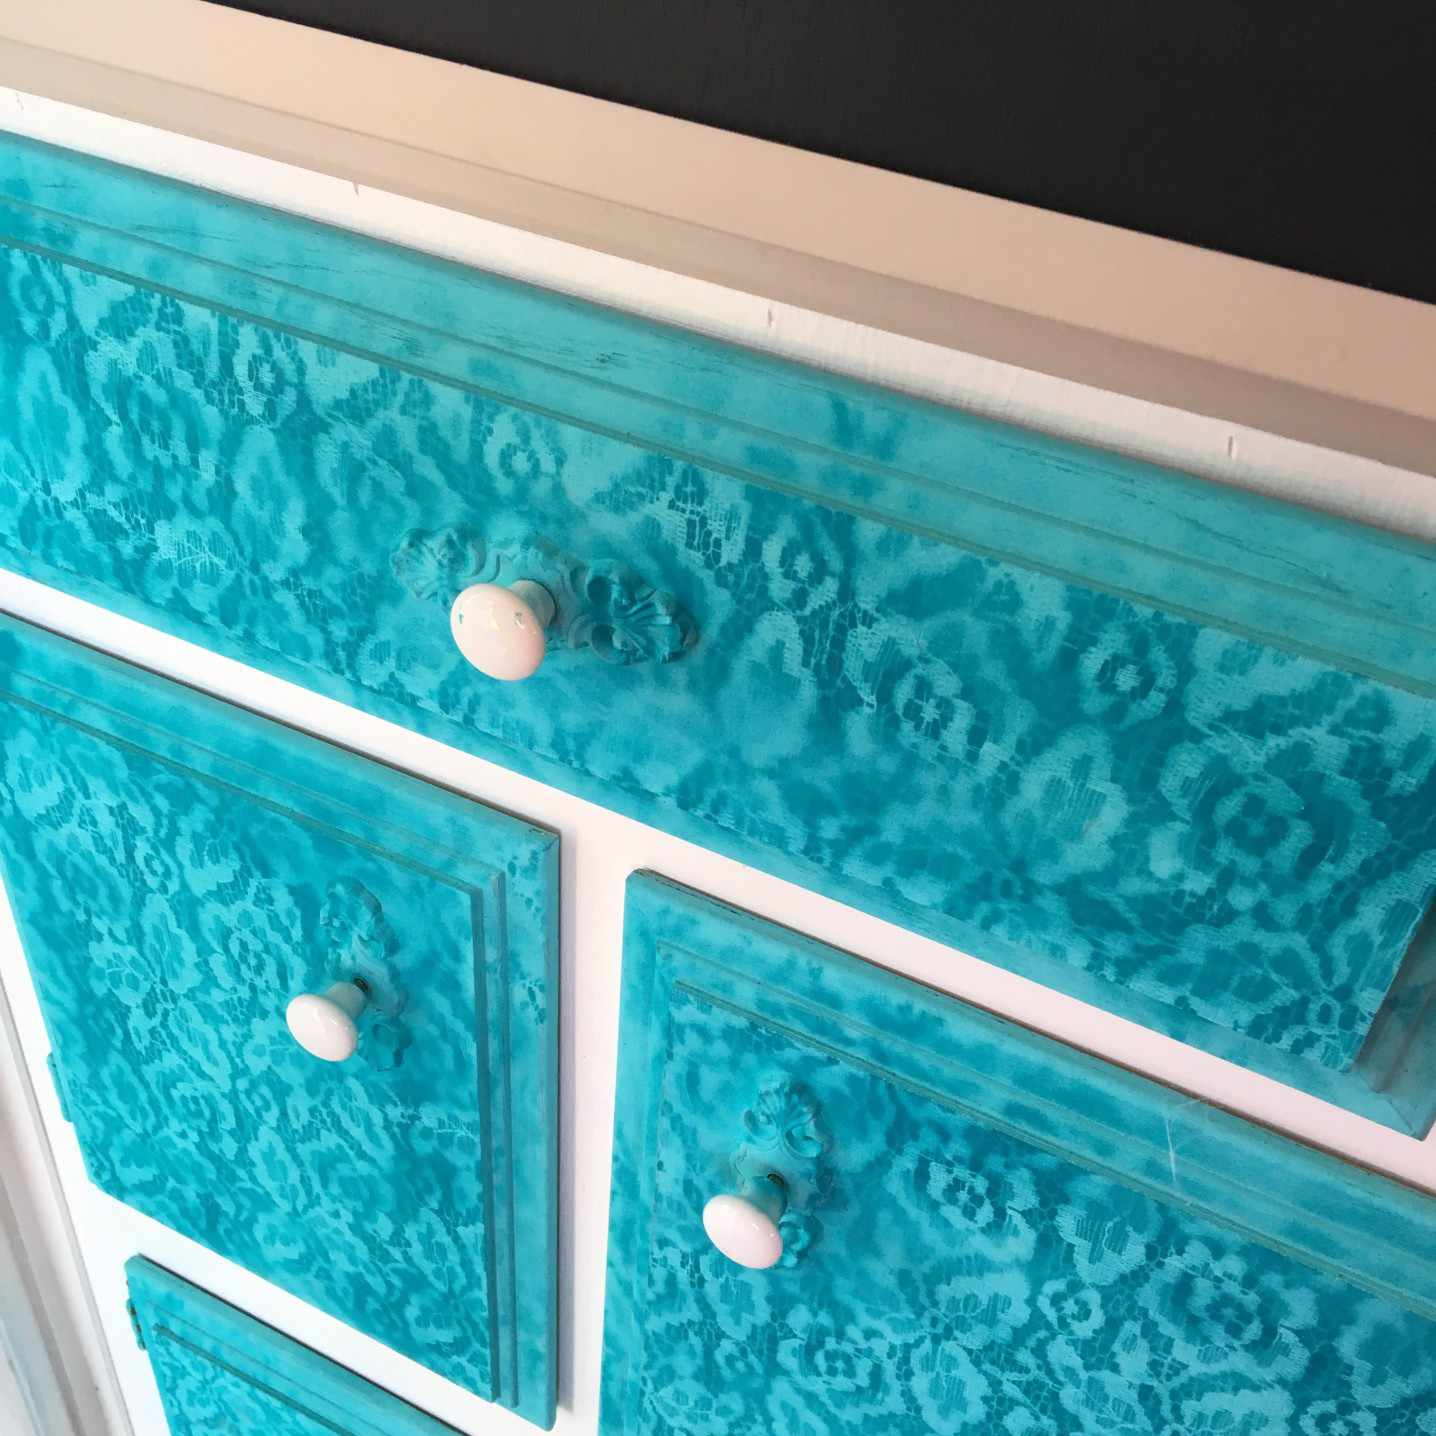 Aqua and lace painted teal furniture